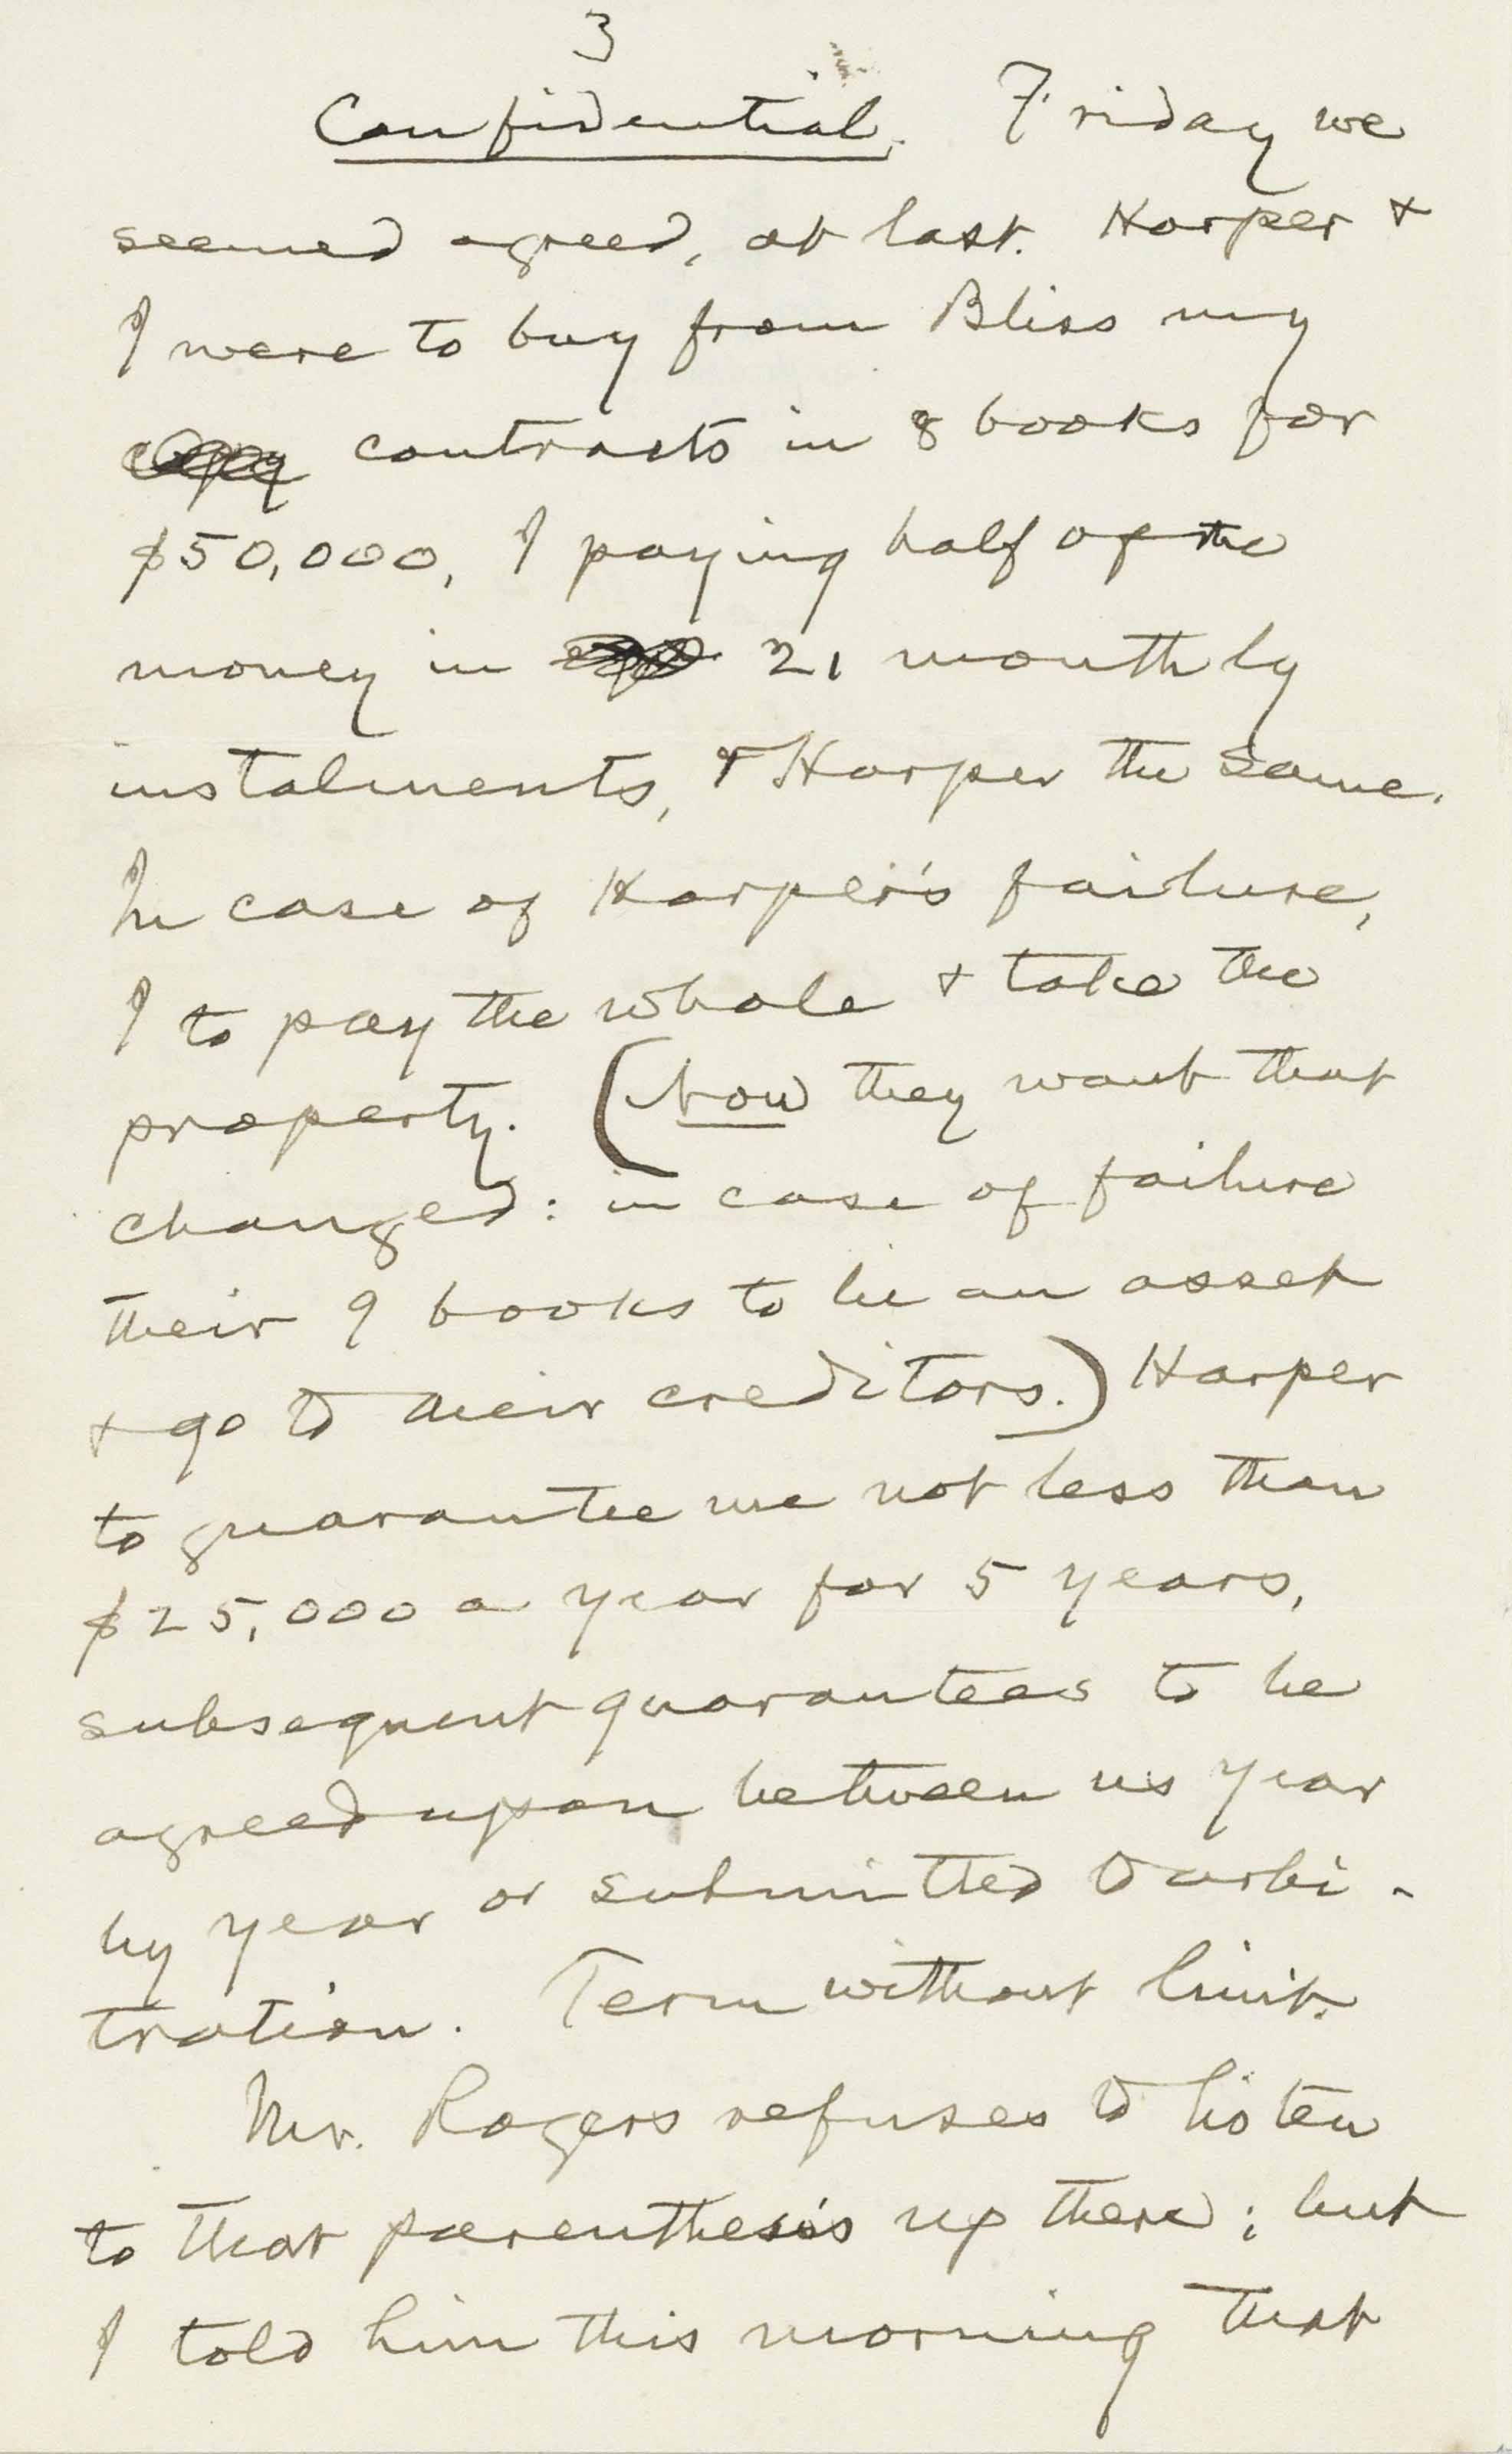 """CLEMENS, Samuel Langhorne (""""Mark Twain""""). Autograph letter signed (""""S.L. Clemens"""") to """"Mr. Mac Alister"""" (1856-1925). New York, 11 October 1903. 5 pages, 8vo, on Grosvenor stationery, envelope."""